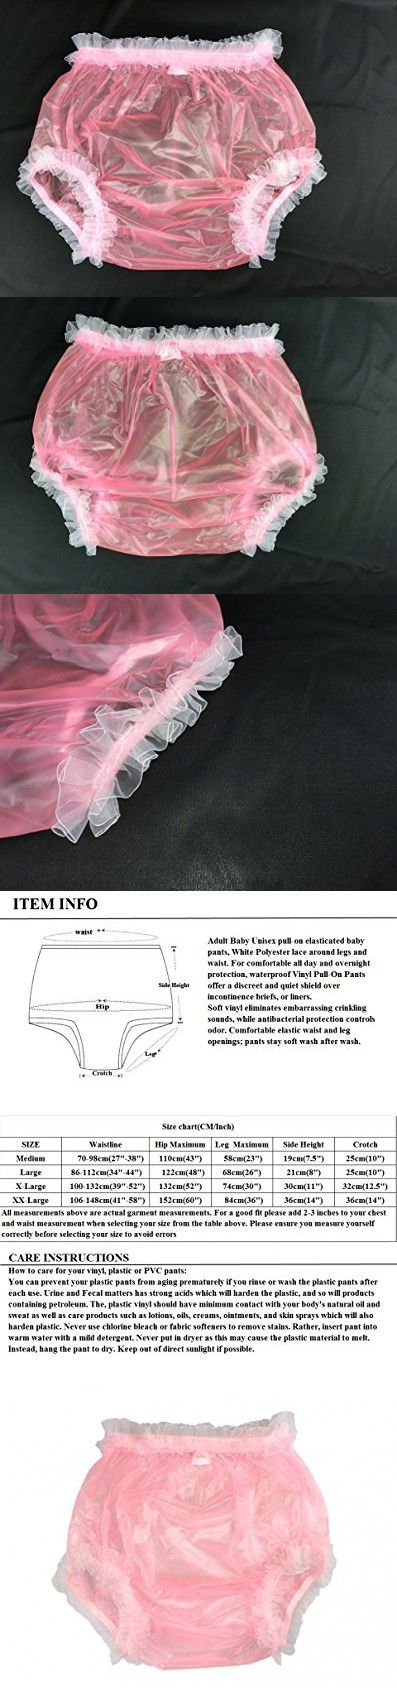 Haian Adult Incontinence Pull-on Plastic Pants Lace Panties Color Transparent Pink With White Lace (Medium)